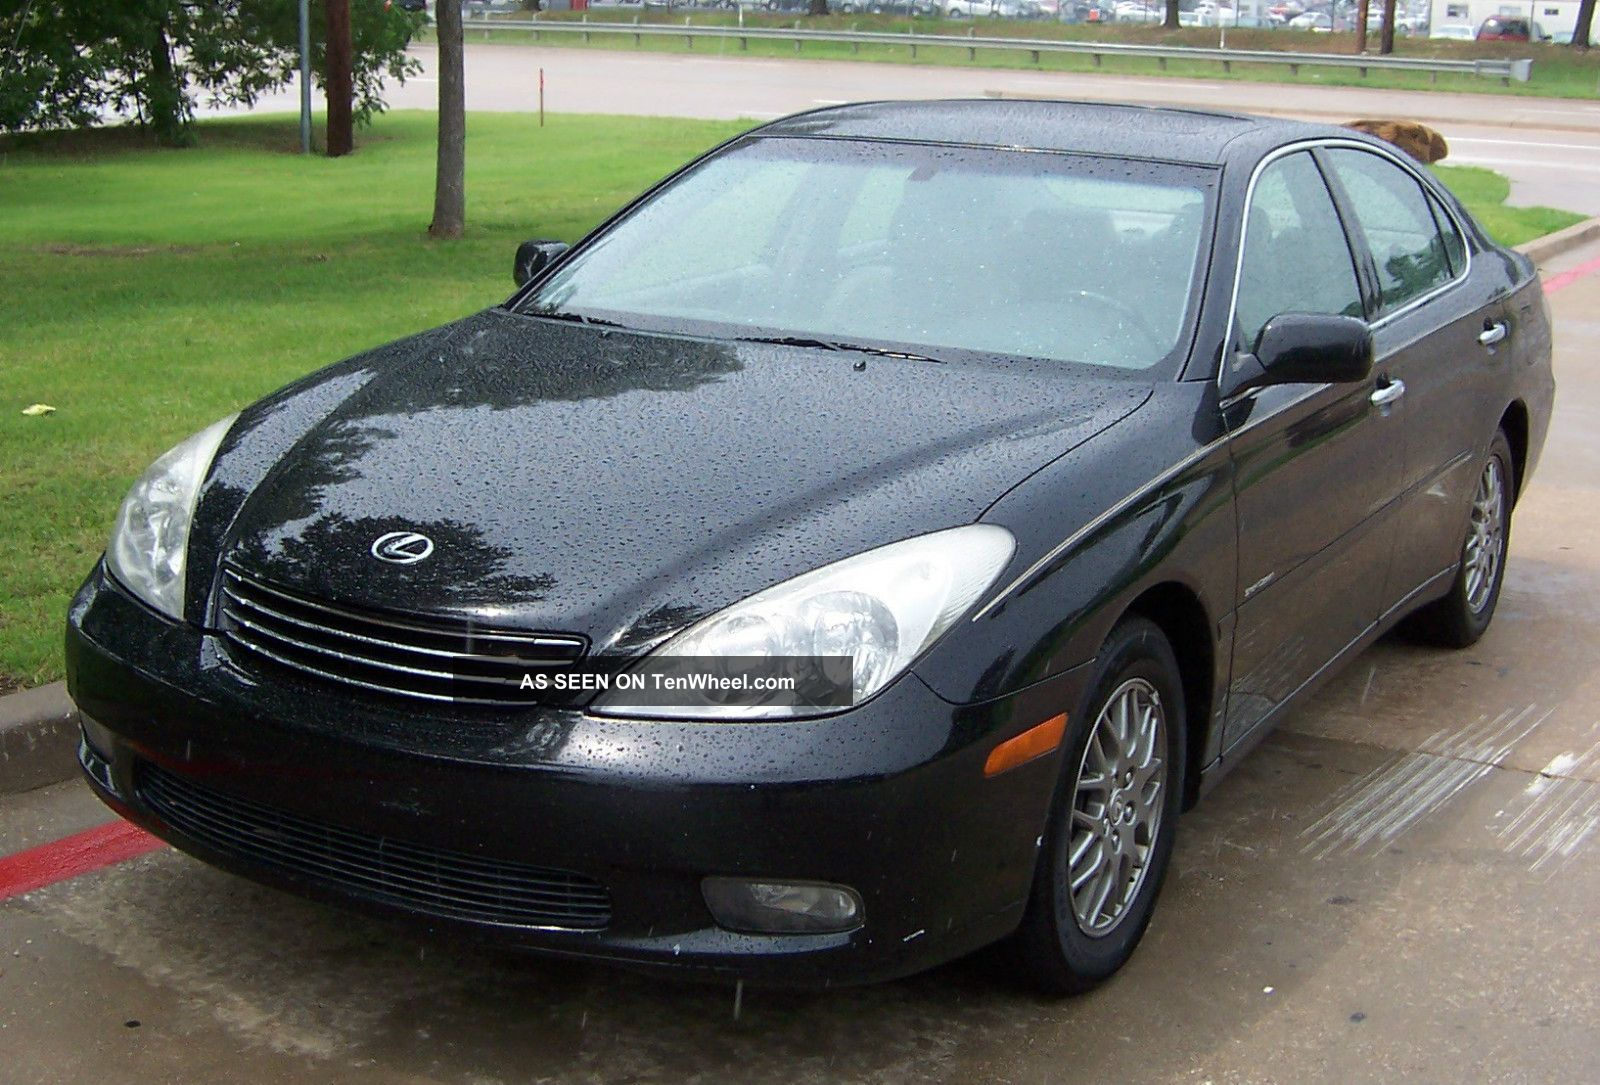 Lexus Es Sport Design Edition Black With Tan Lgw further Maxresdefault furthermore Resize W H also Lexus Es Fuse Box Engine  partment also D Radiator Replacement Imag. on 2004 lexus es 330 engine pictures